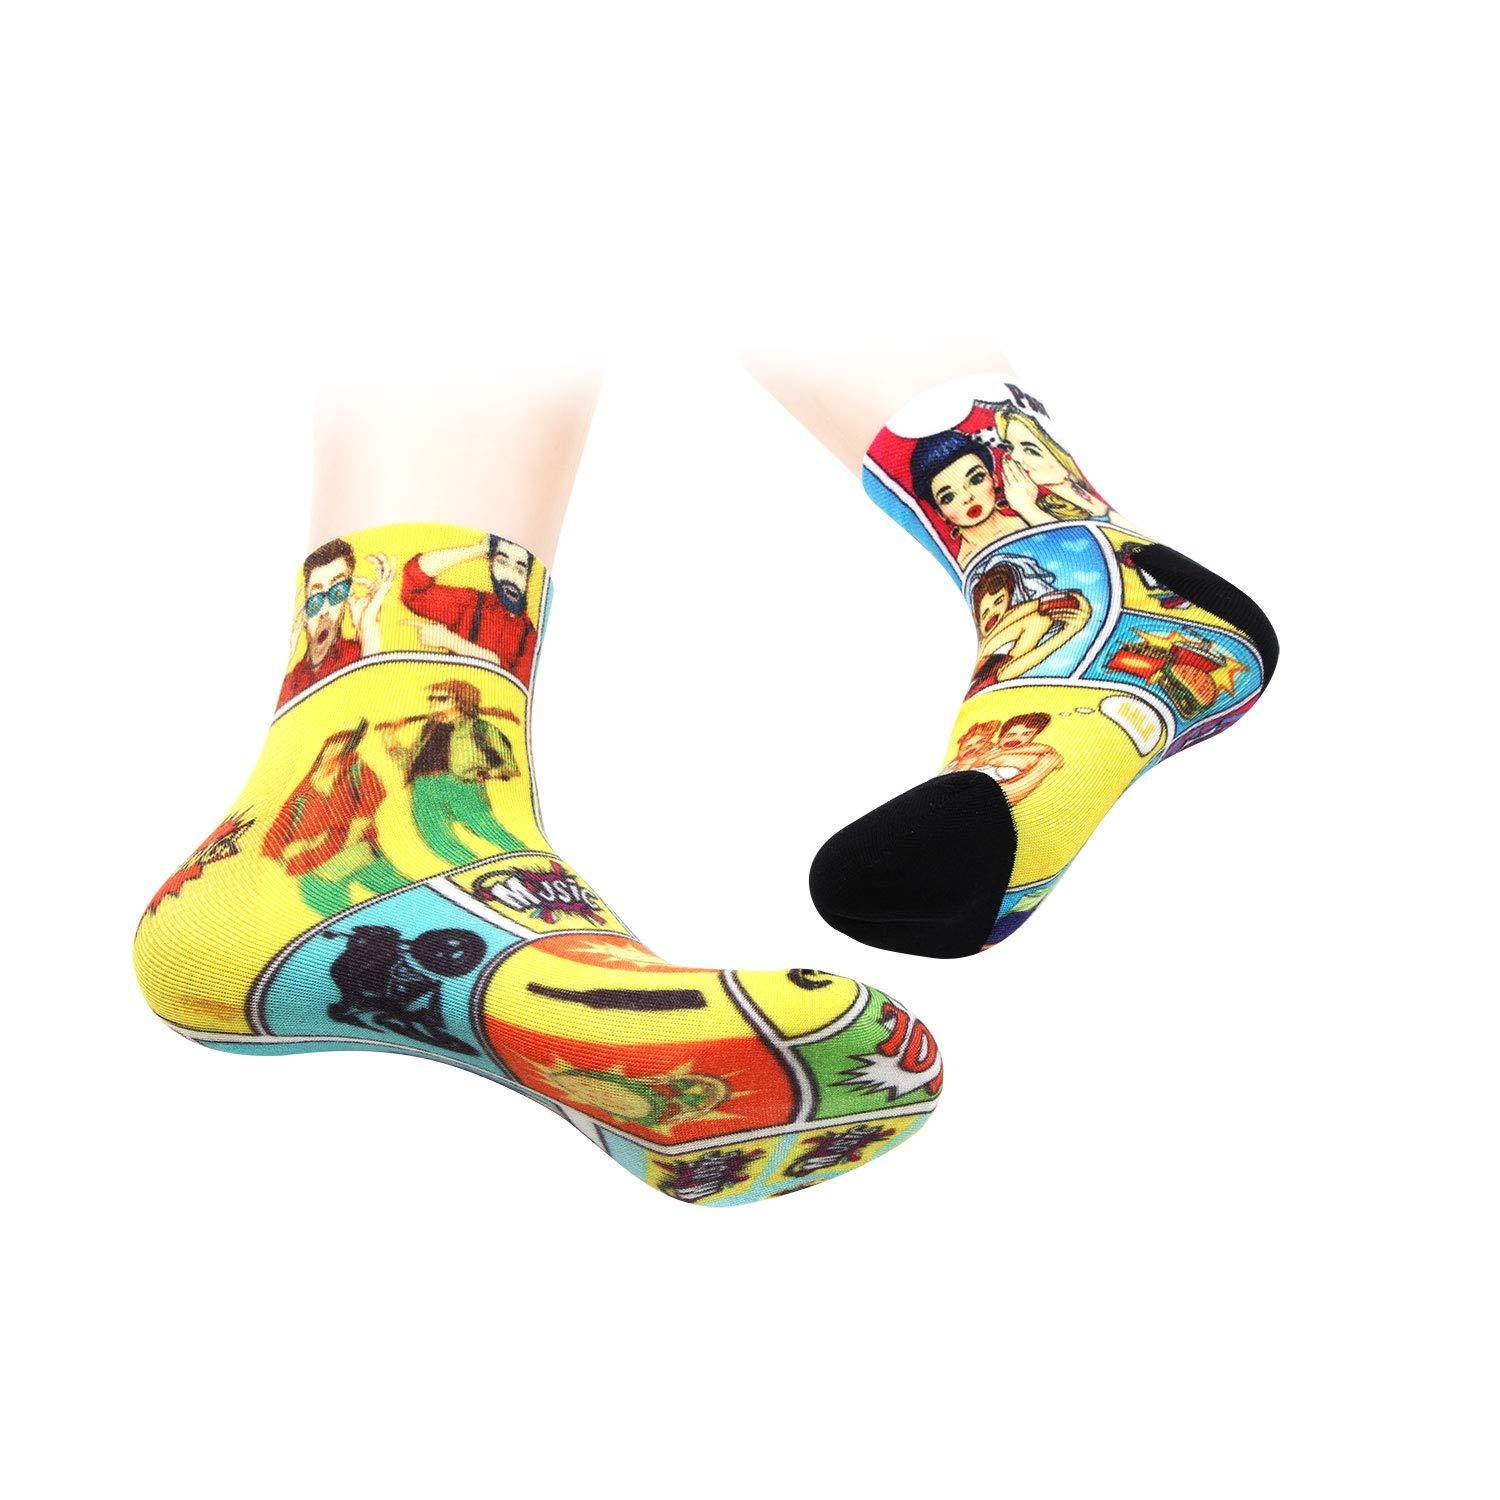 Limited Edition Fashion Socks - Pack Of 2